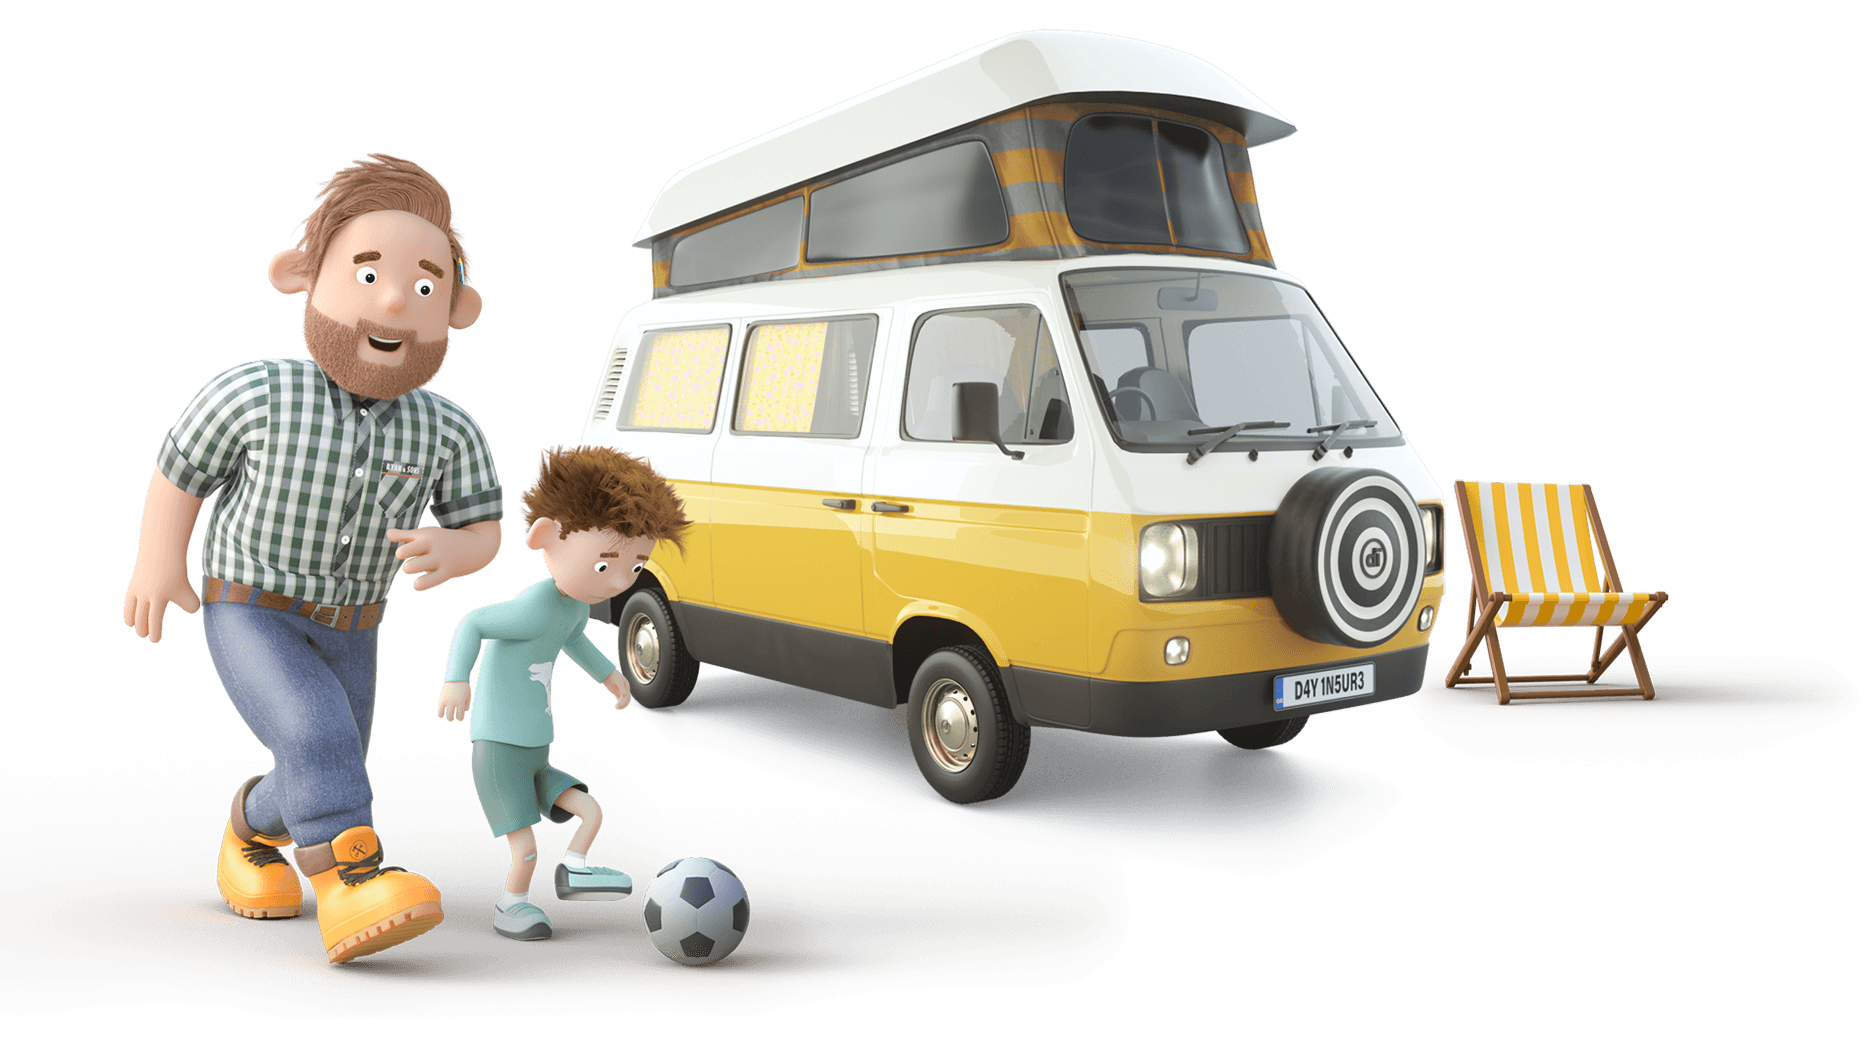 Dayinsure Dad and Son playing in front of Motorhome